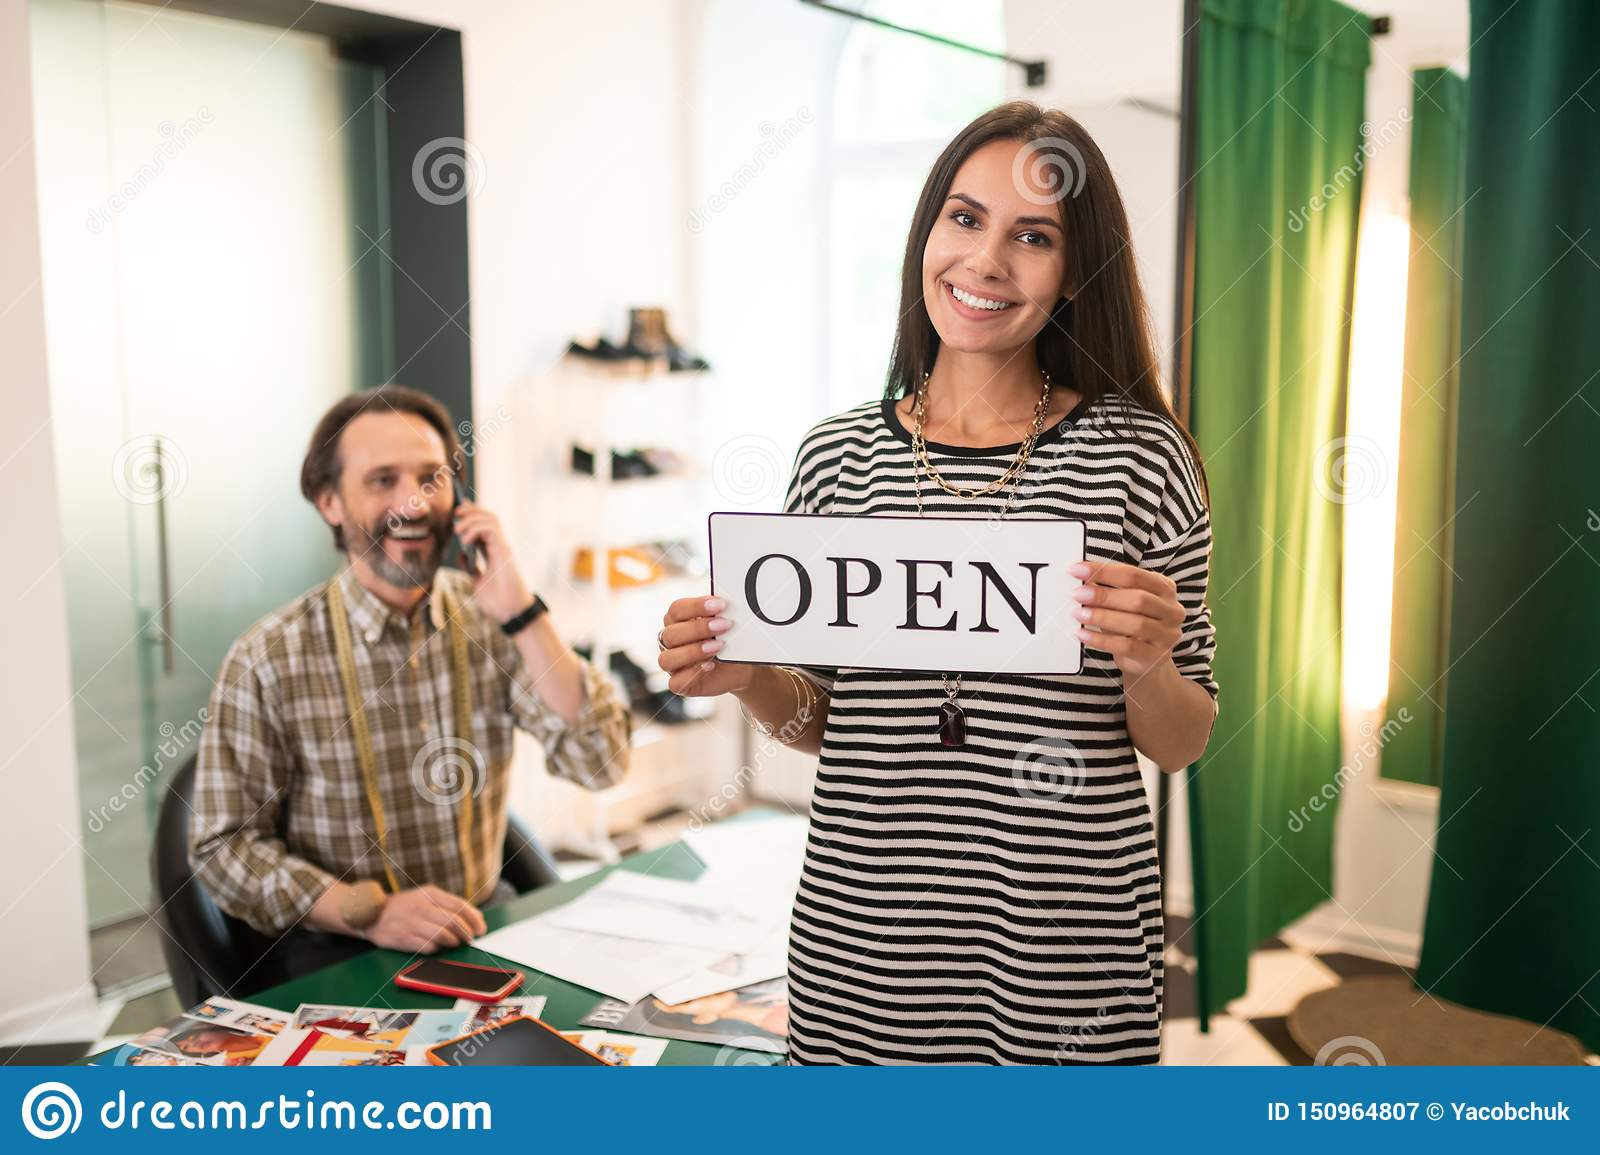 Happy smiling alluring radiant woman holding an open sign